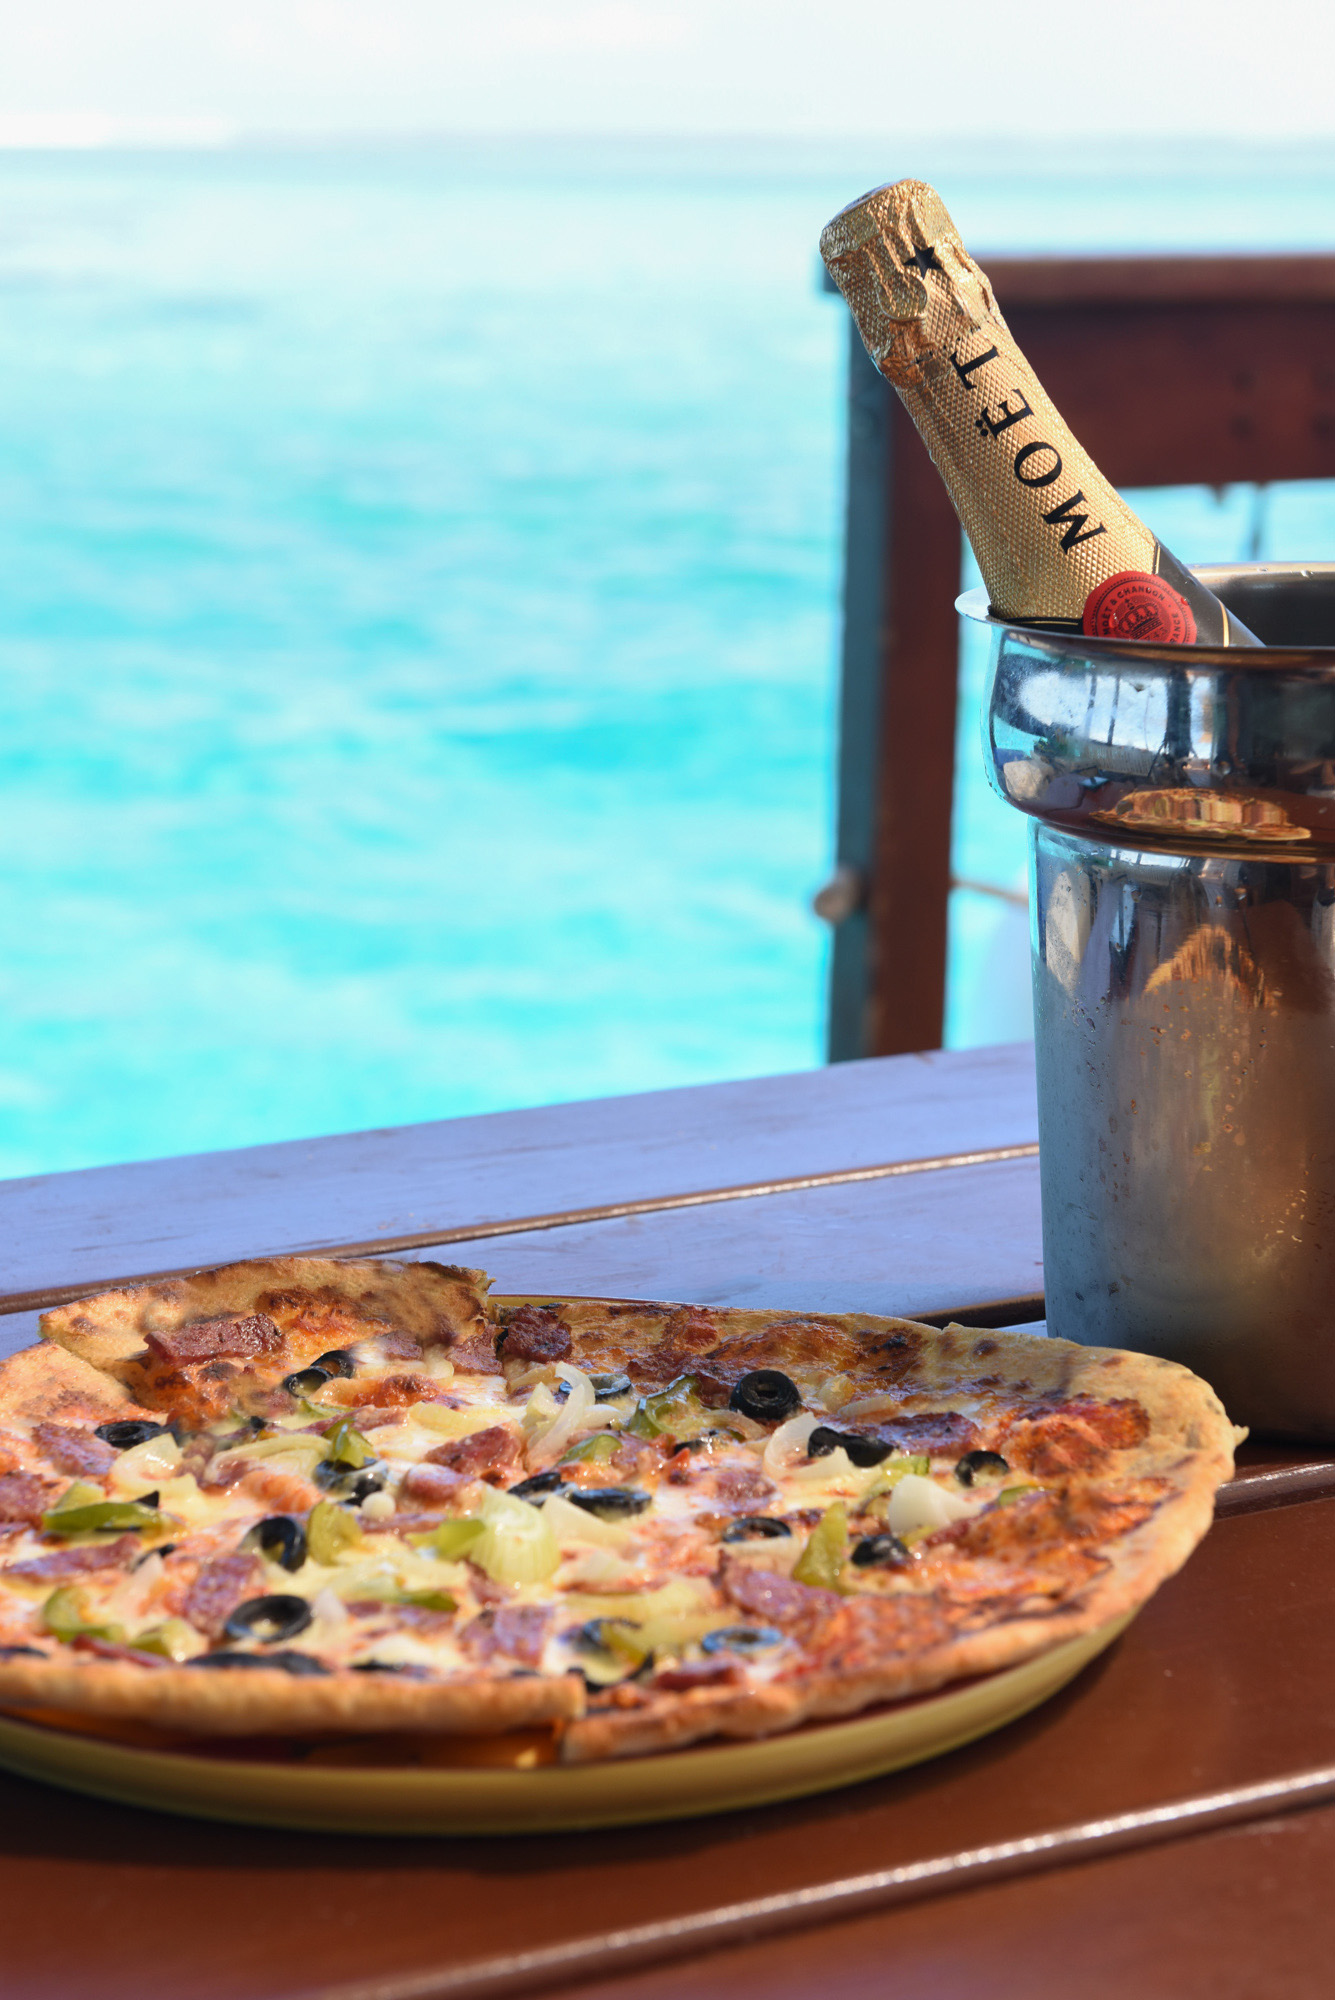 Composition with home made pizza oven and a bottle of champagne in ice pot in front of the blue sea